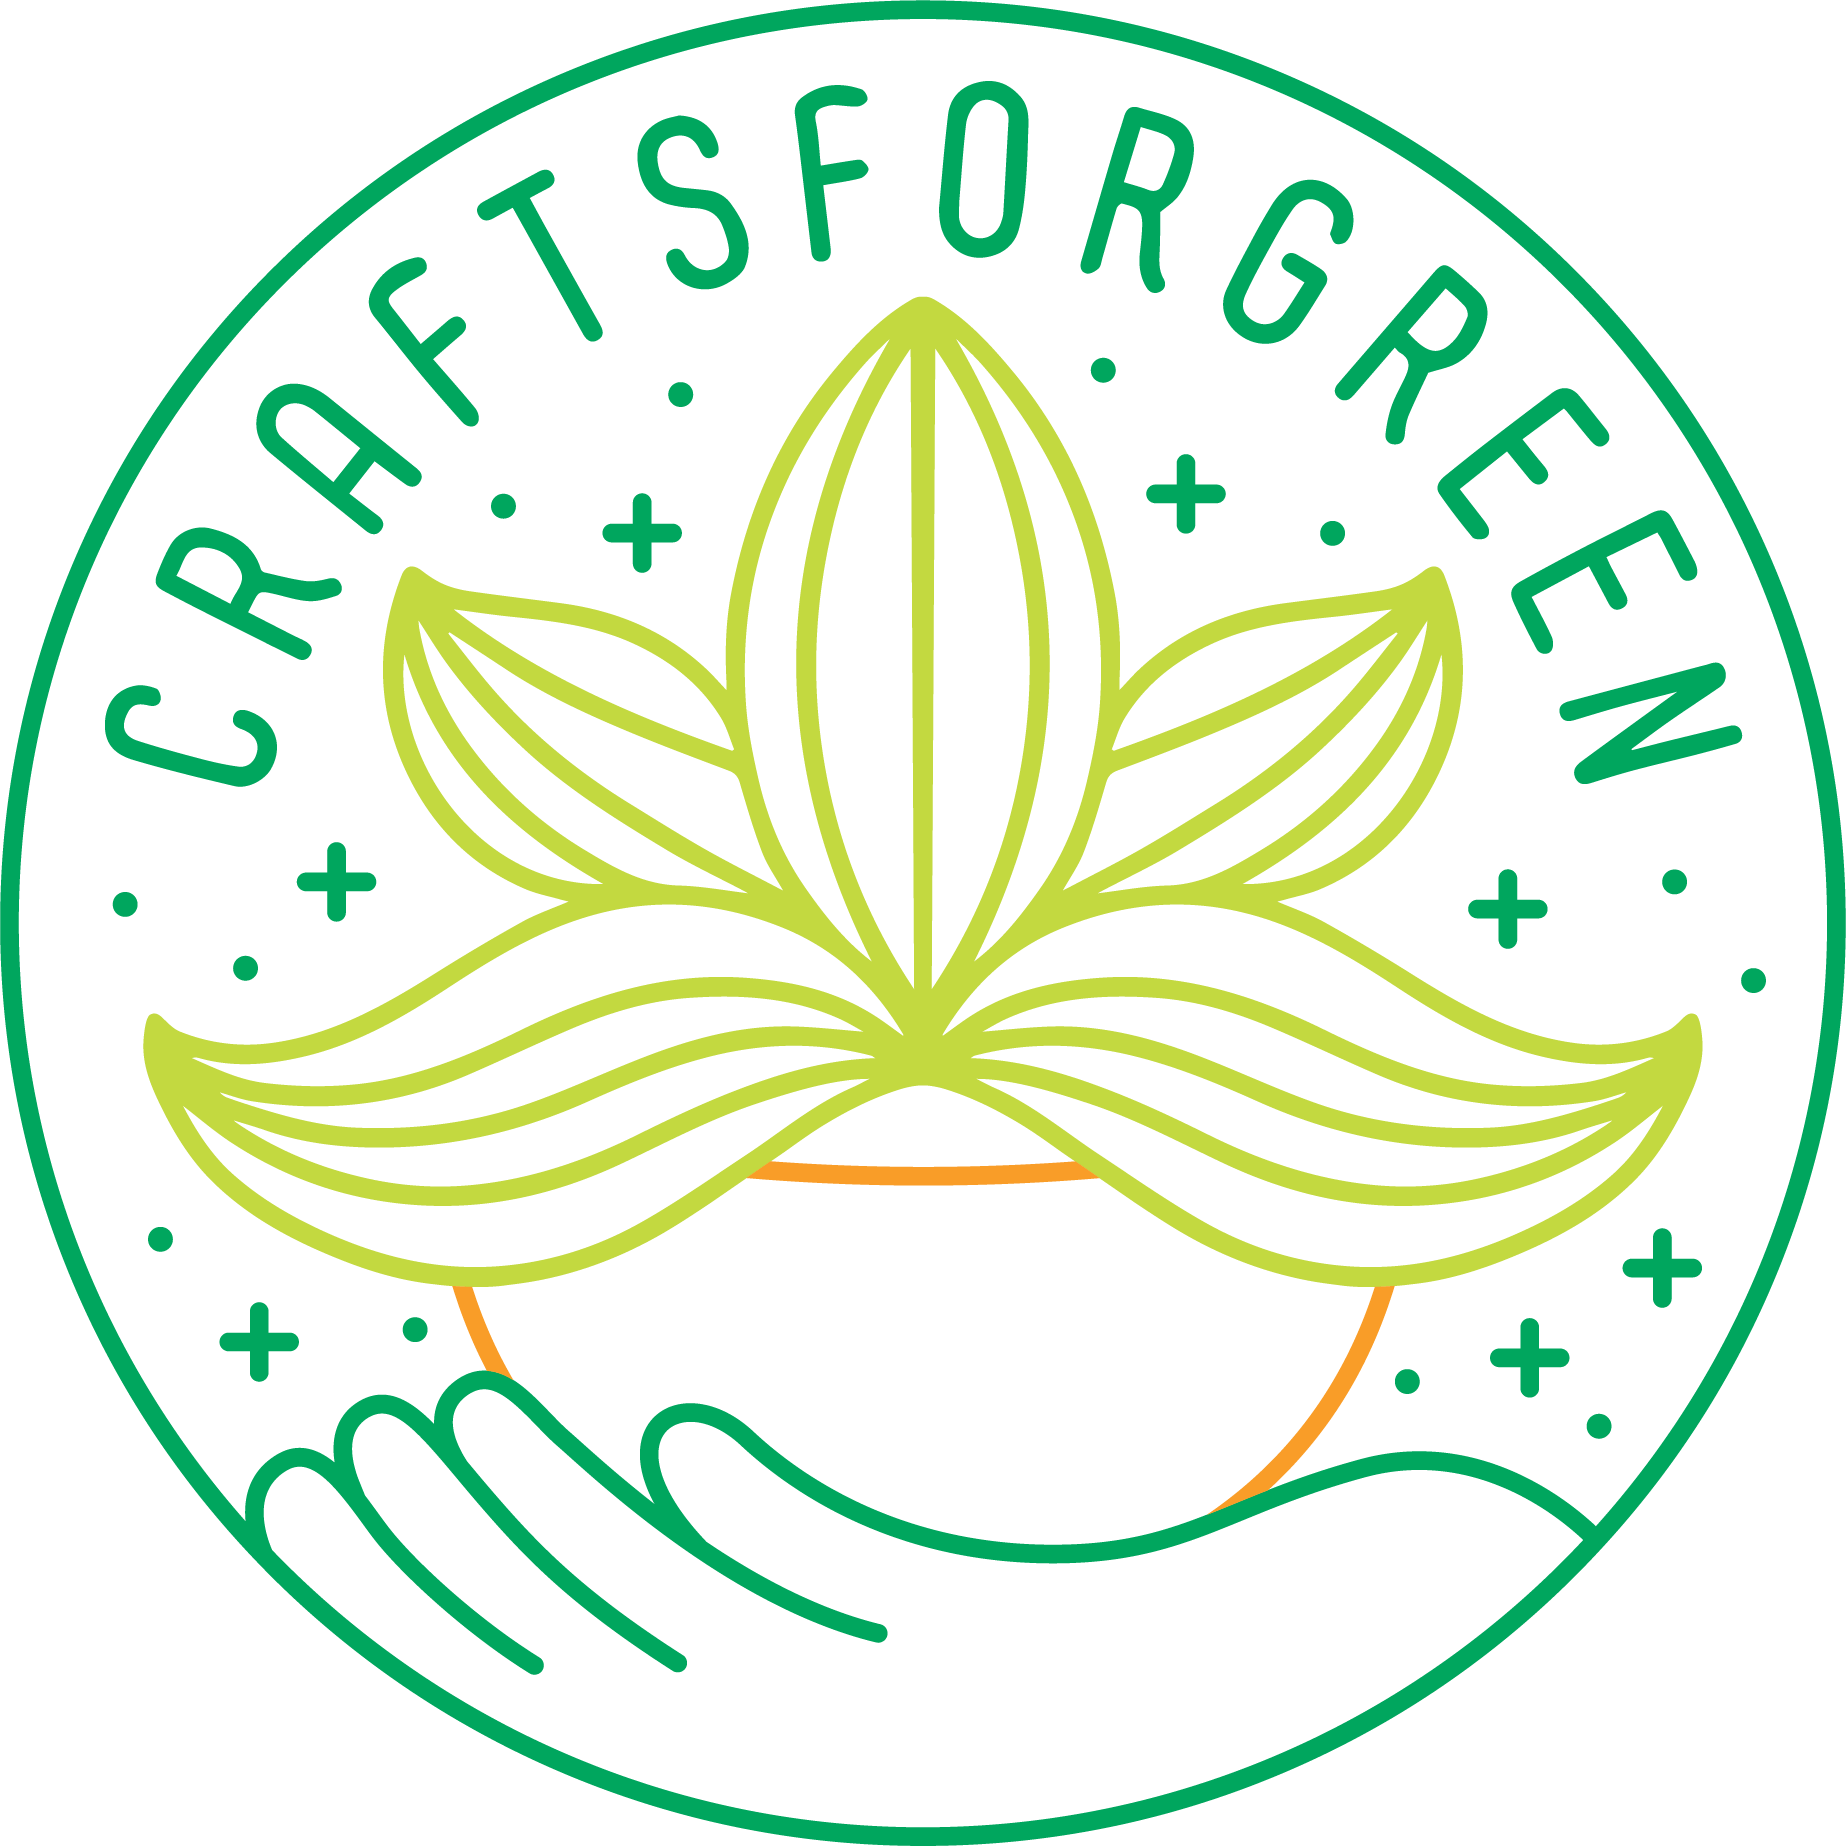 Craftsforgreen